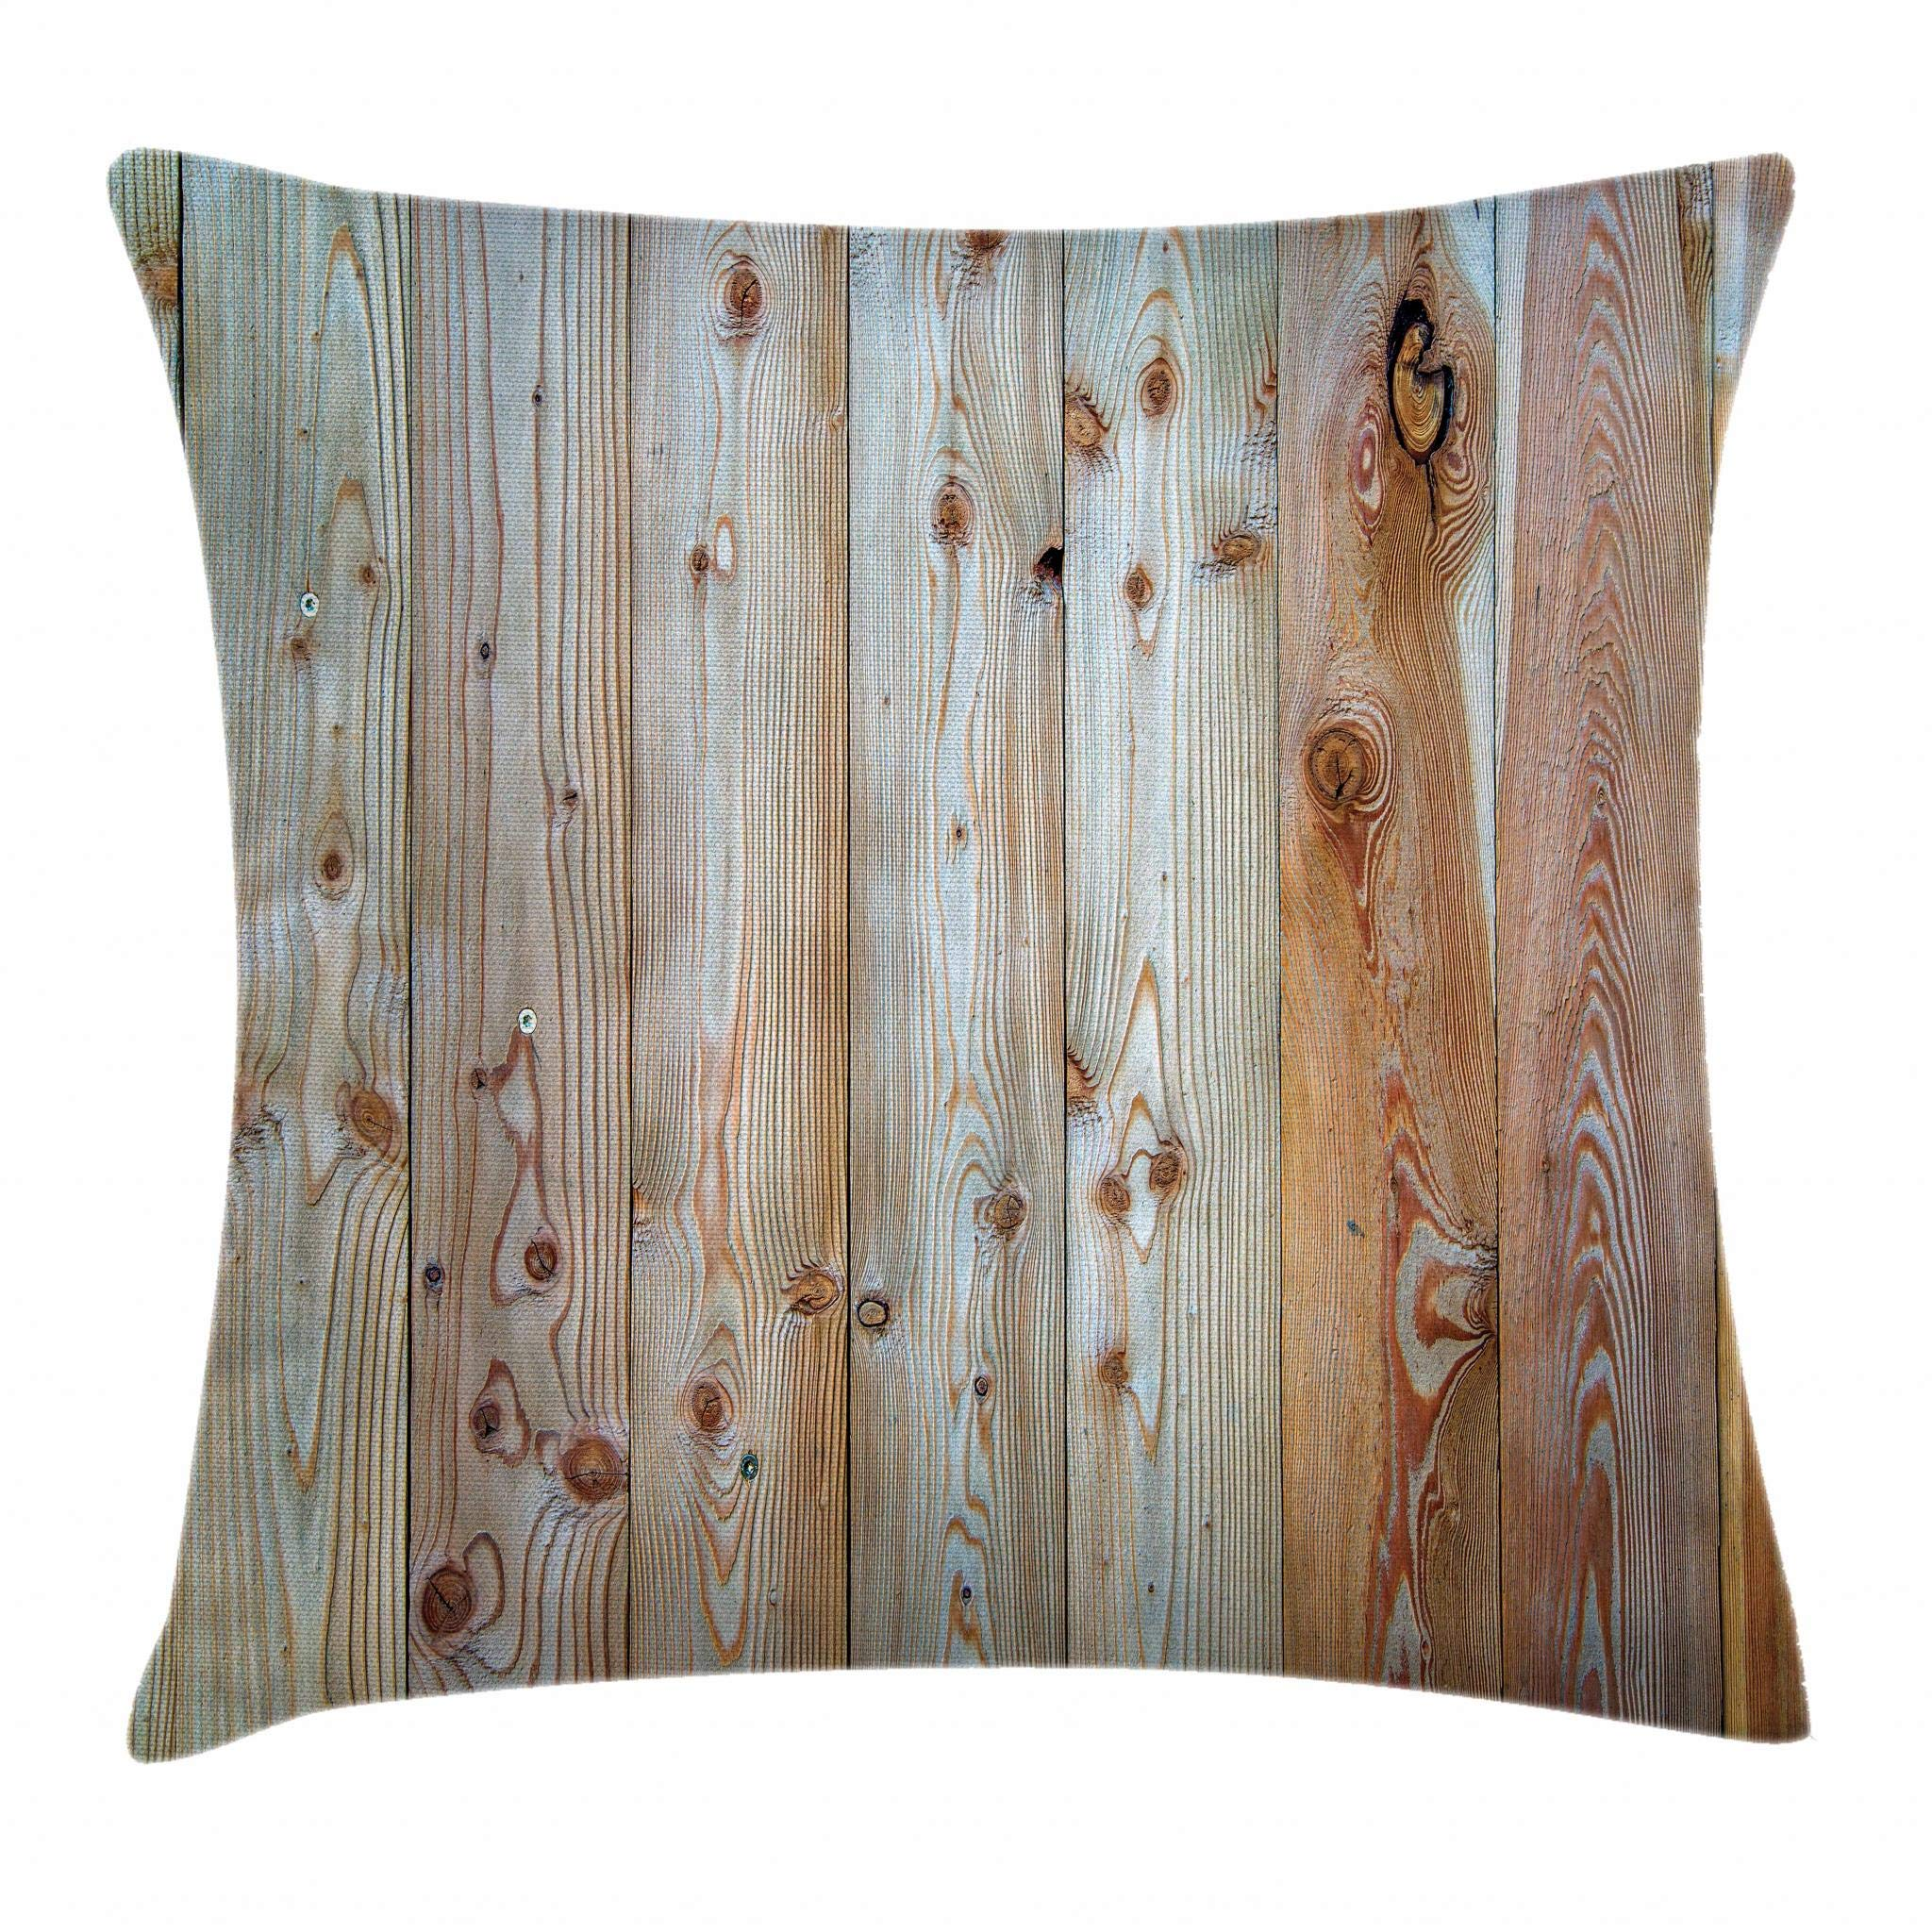 Ambesonne Rustic Throw Pillow Cushion Cover, Monochrome Wood Design Minimalist Rough Rustic Tiled Logs Row Plank Surface Texture Image, Decorative Square Accent Pillow Case, 20 X 20 Inches, Cream